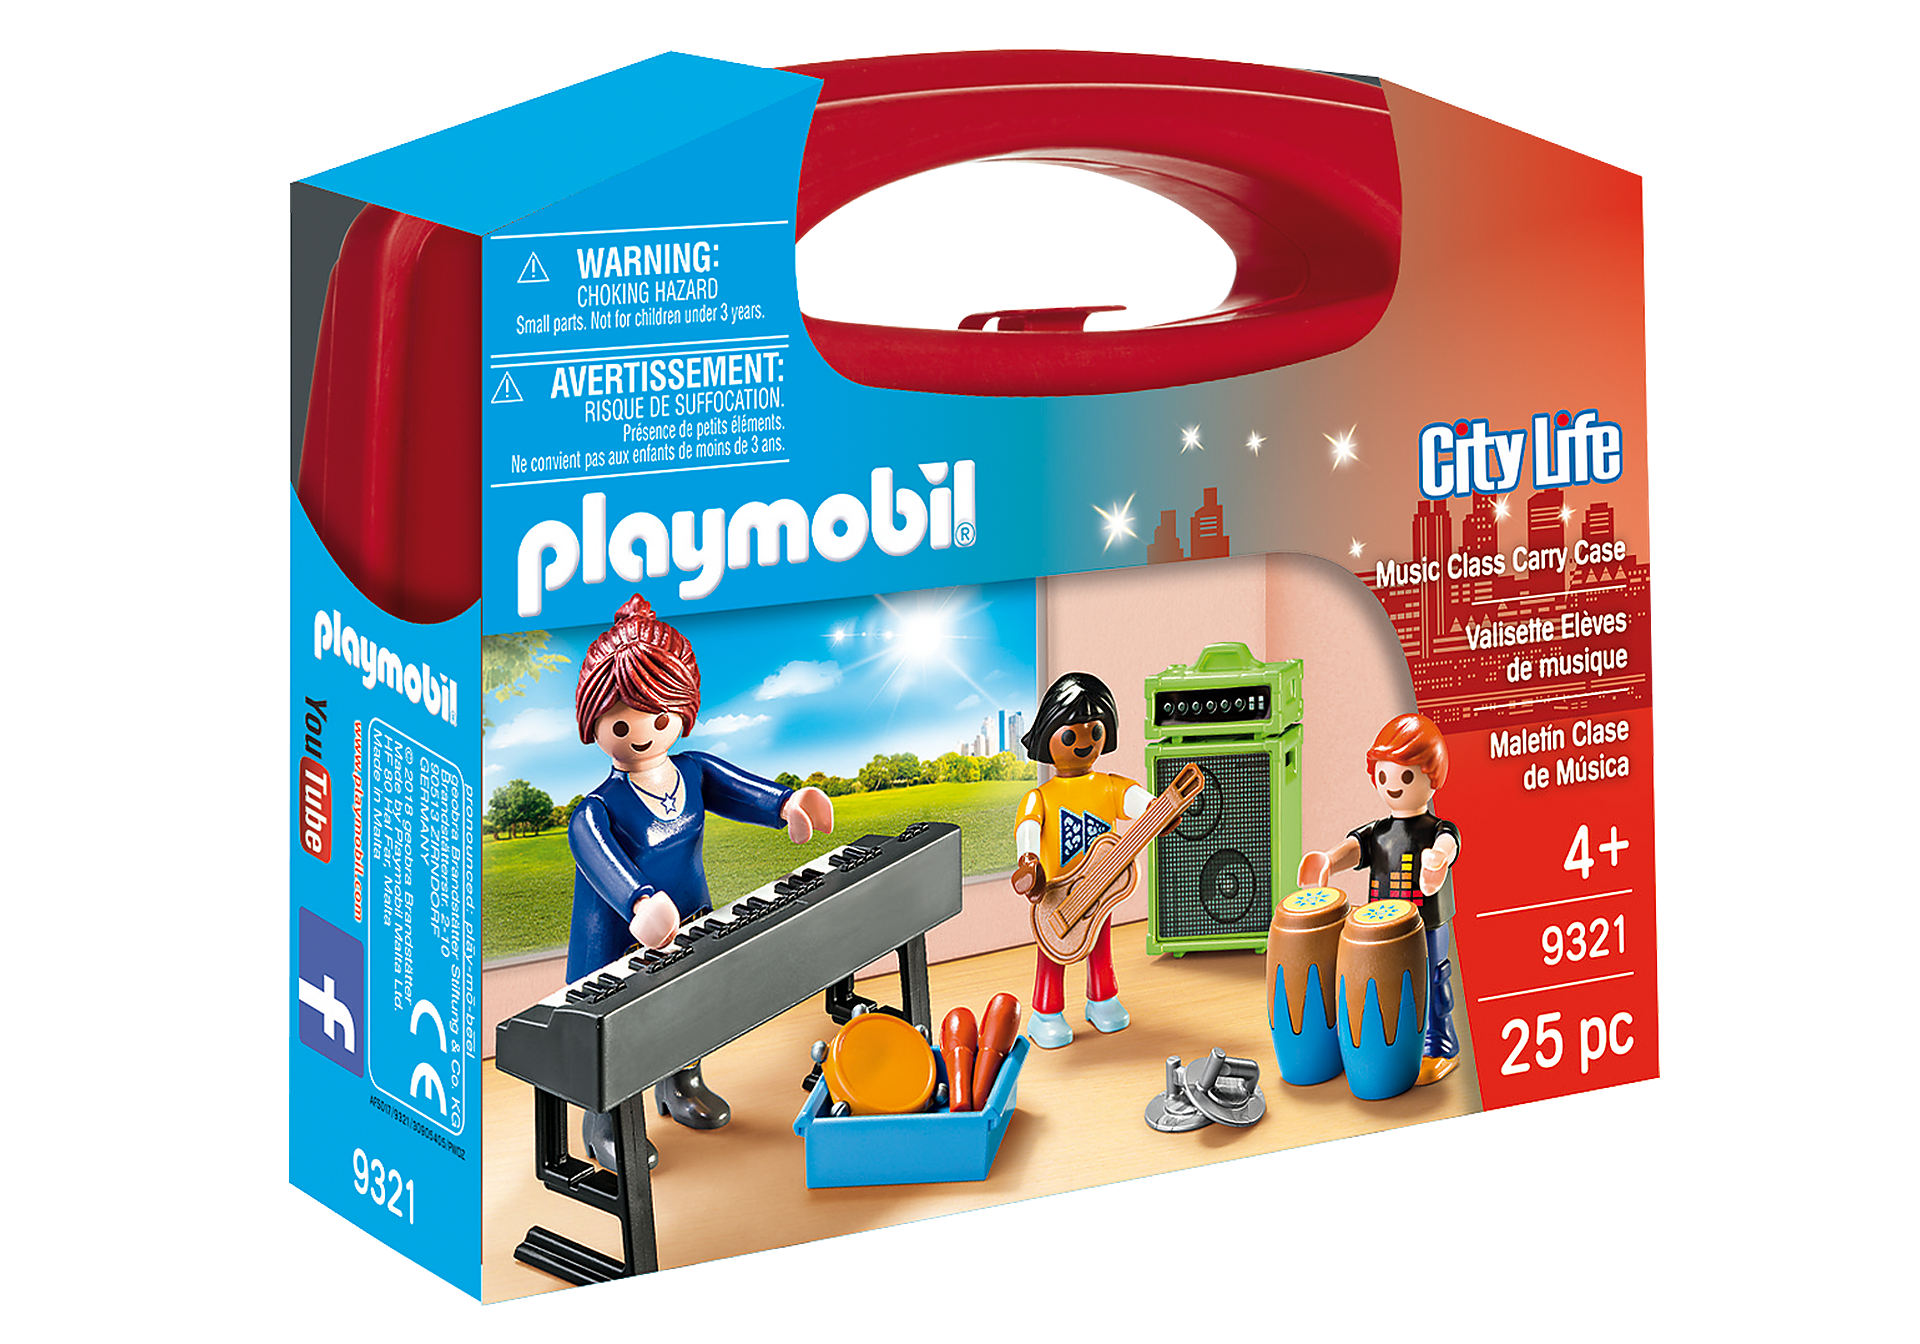 http://media.playmobil.com/i/playmobil/9321_product_box_front/Music Class Carry Case